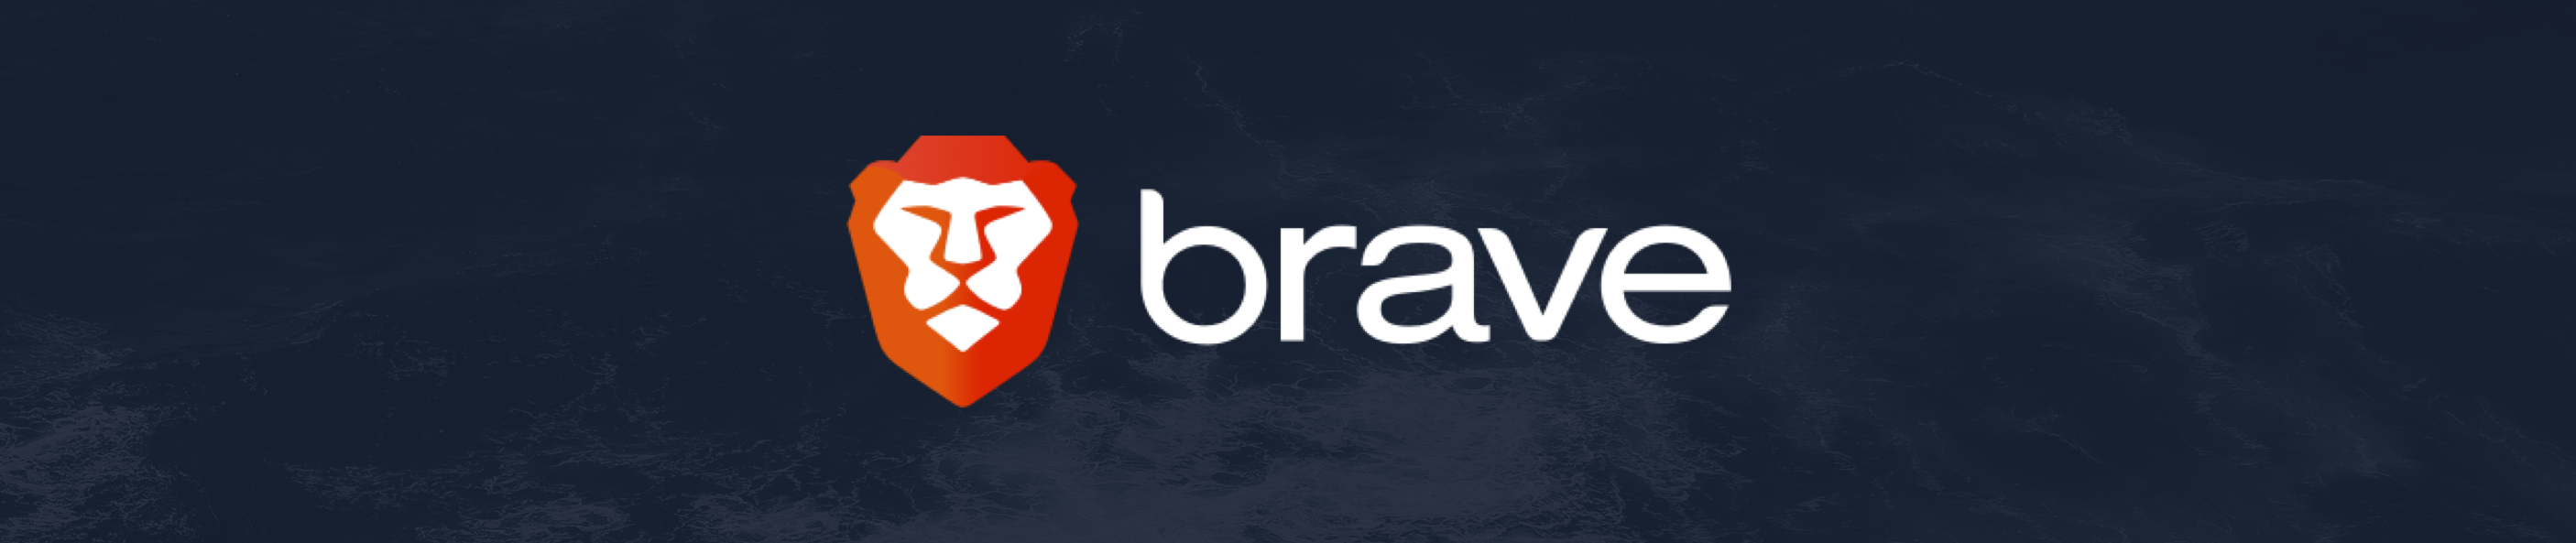 Try the Brave Browser—now compatiable with the new ShapeShift Platform.